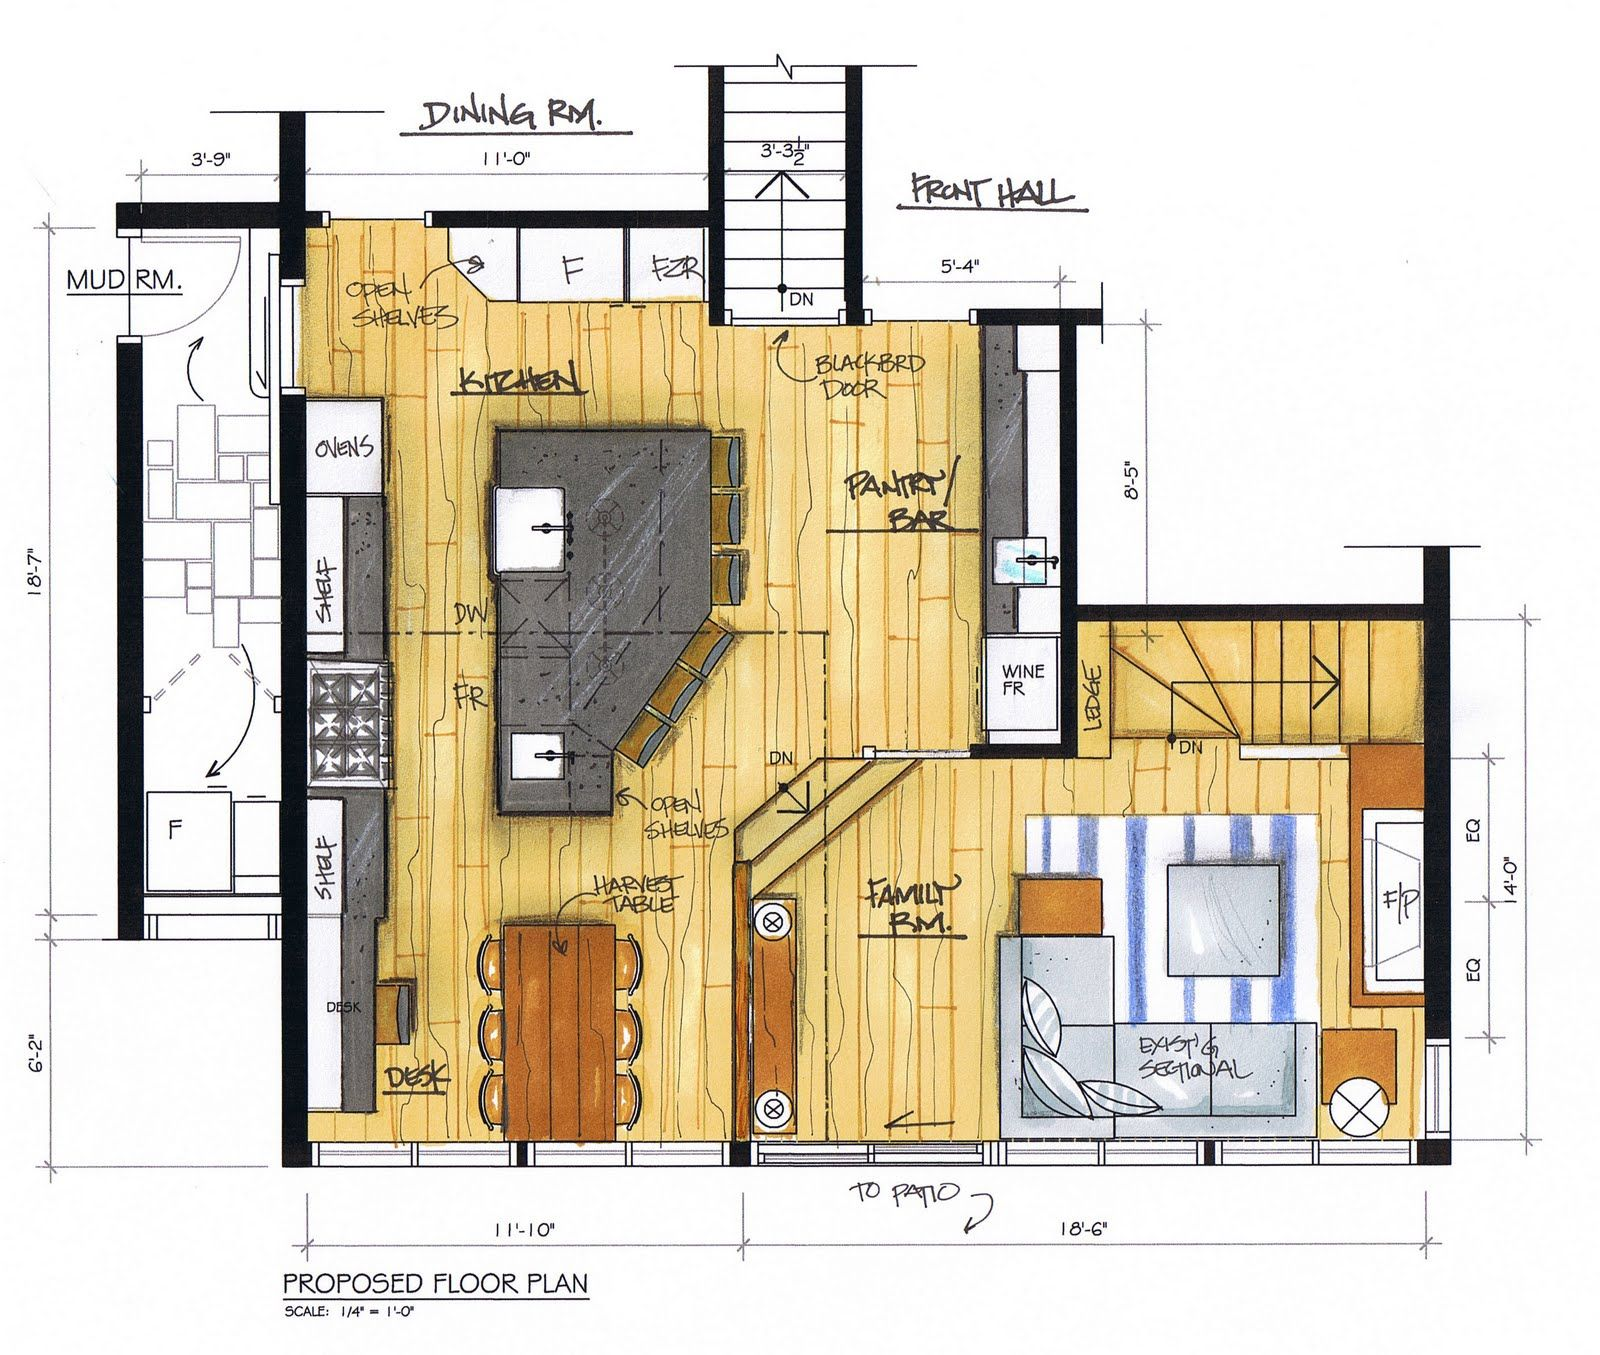 Creed New Project Gail S Kitchen Reno Floor Plan Design Remodeling Floor Plans Small Kitchen Layouts